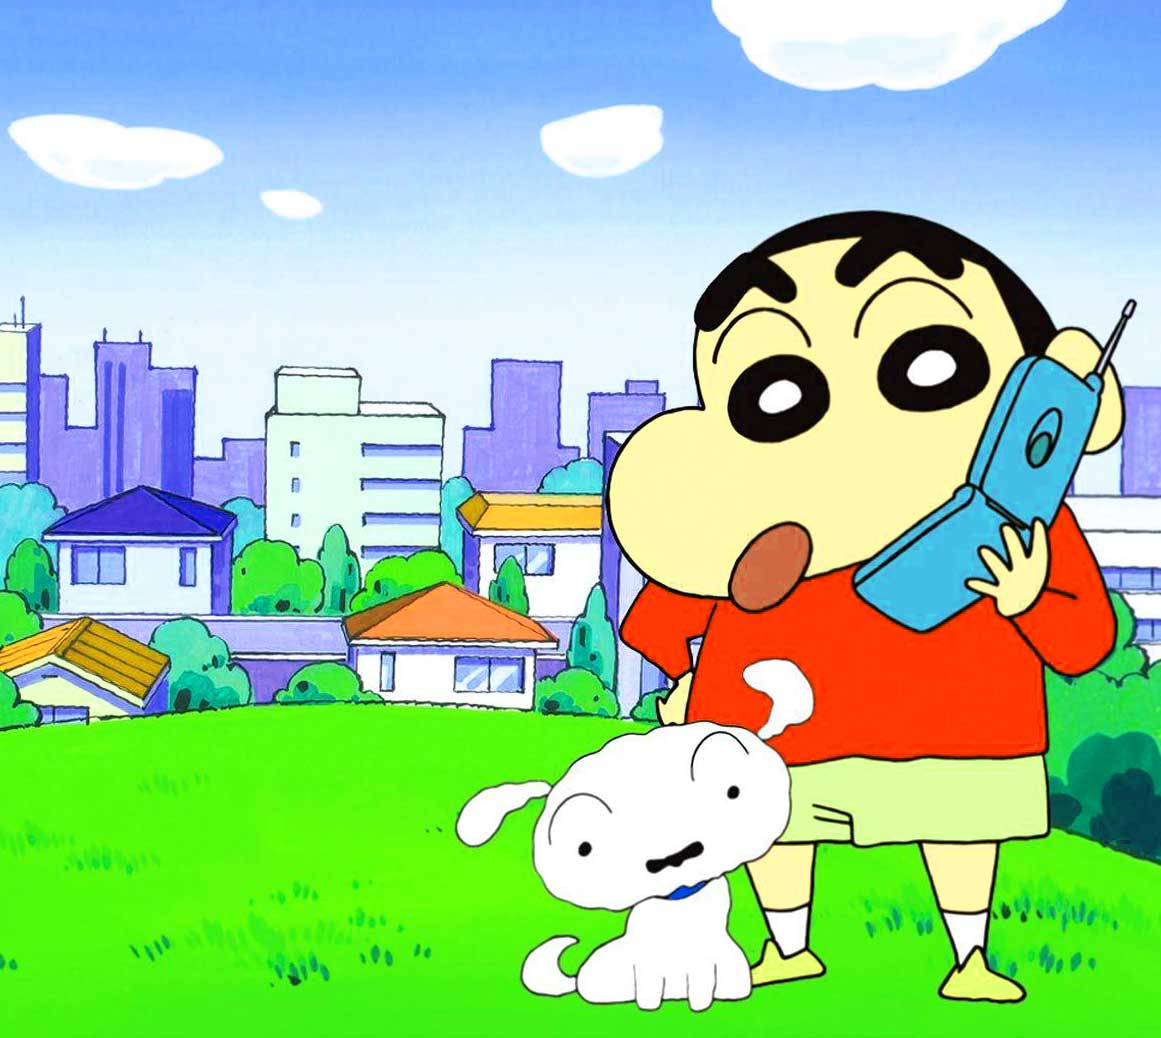 latest nice shinchan whatsapp dp Images pictures free hd